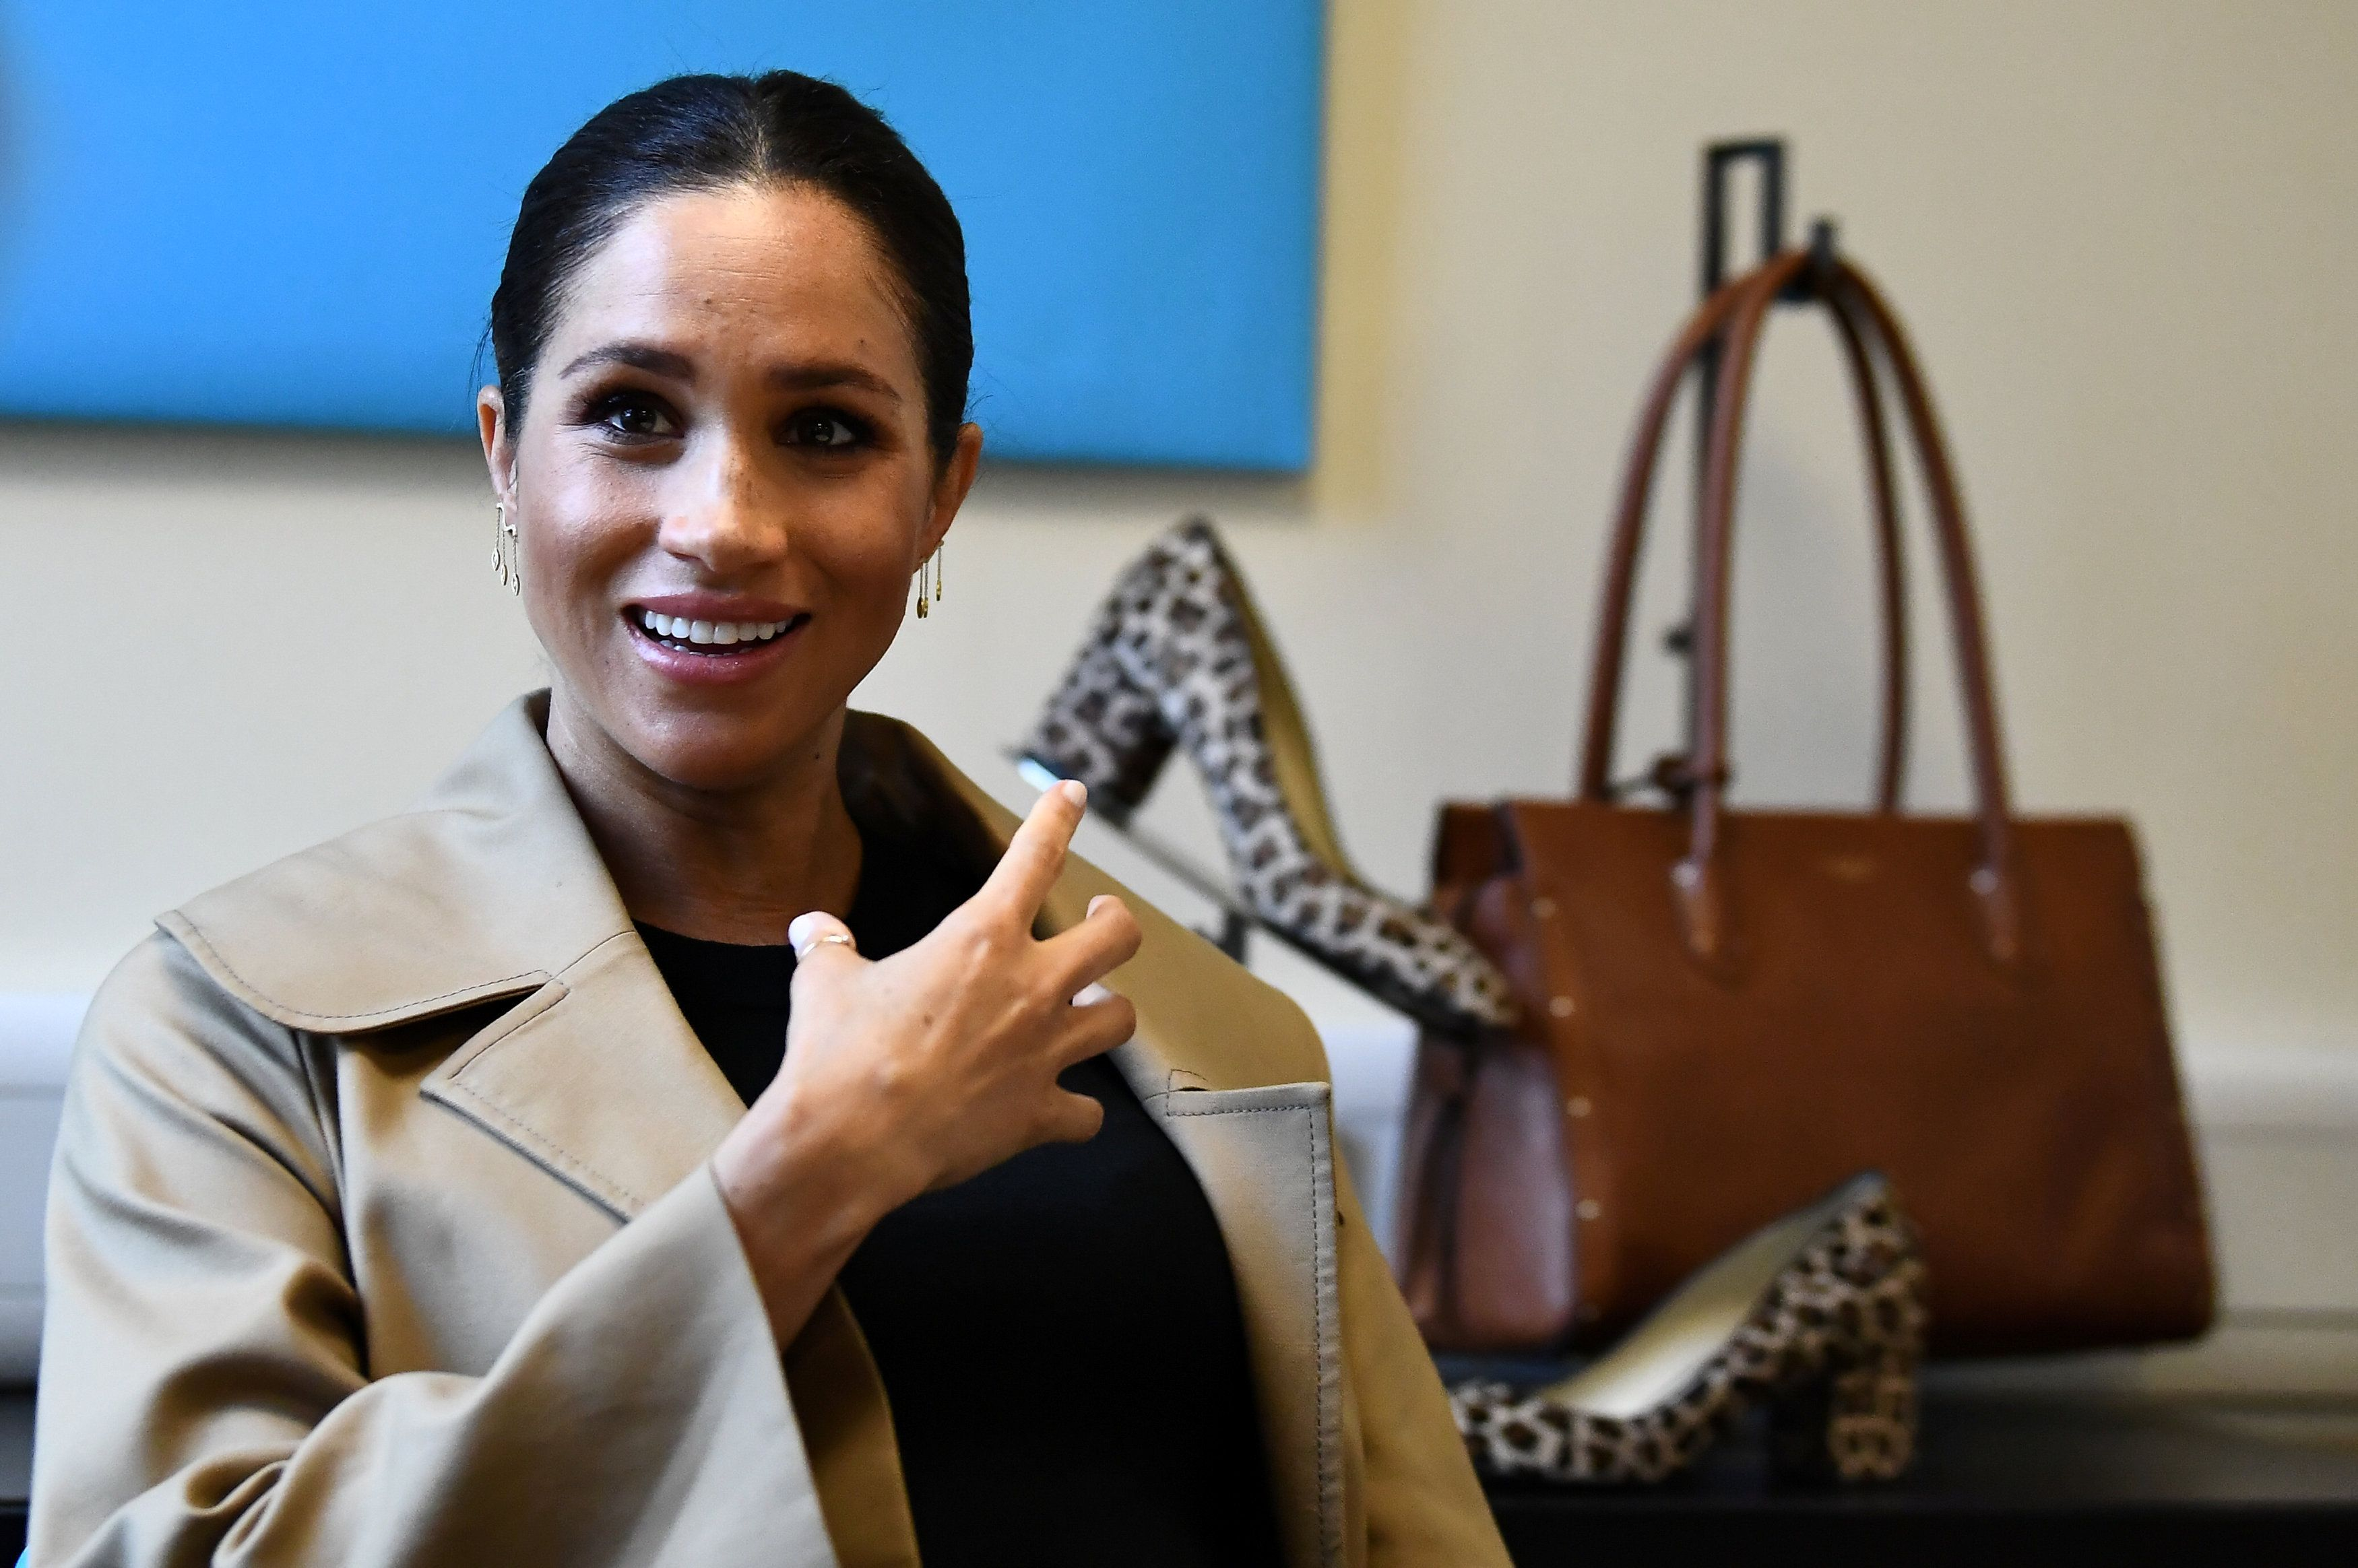 Meghan Markle's New Smart Works Capsule Collection Just Became Shoppable